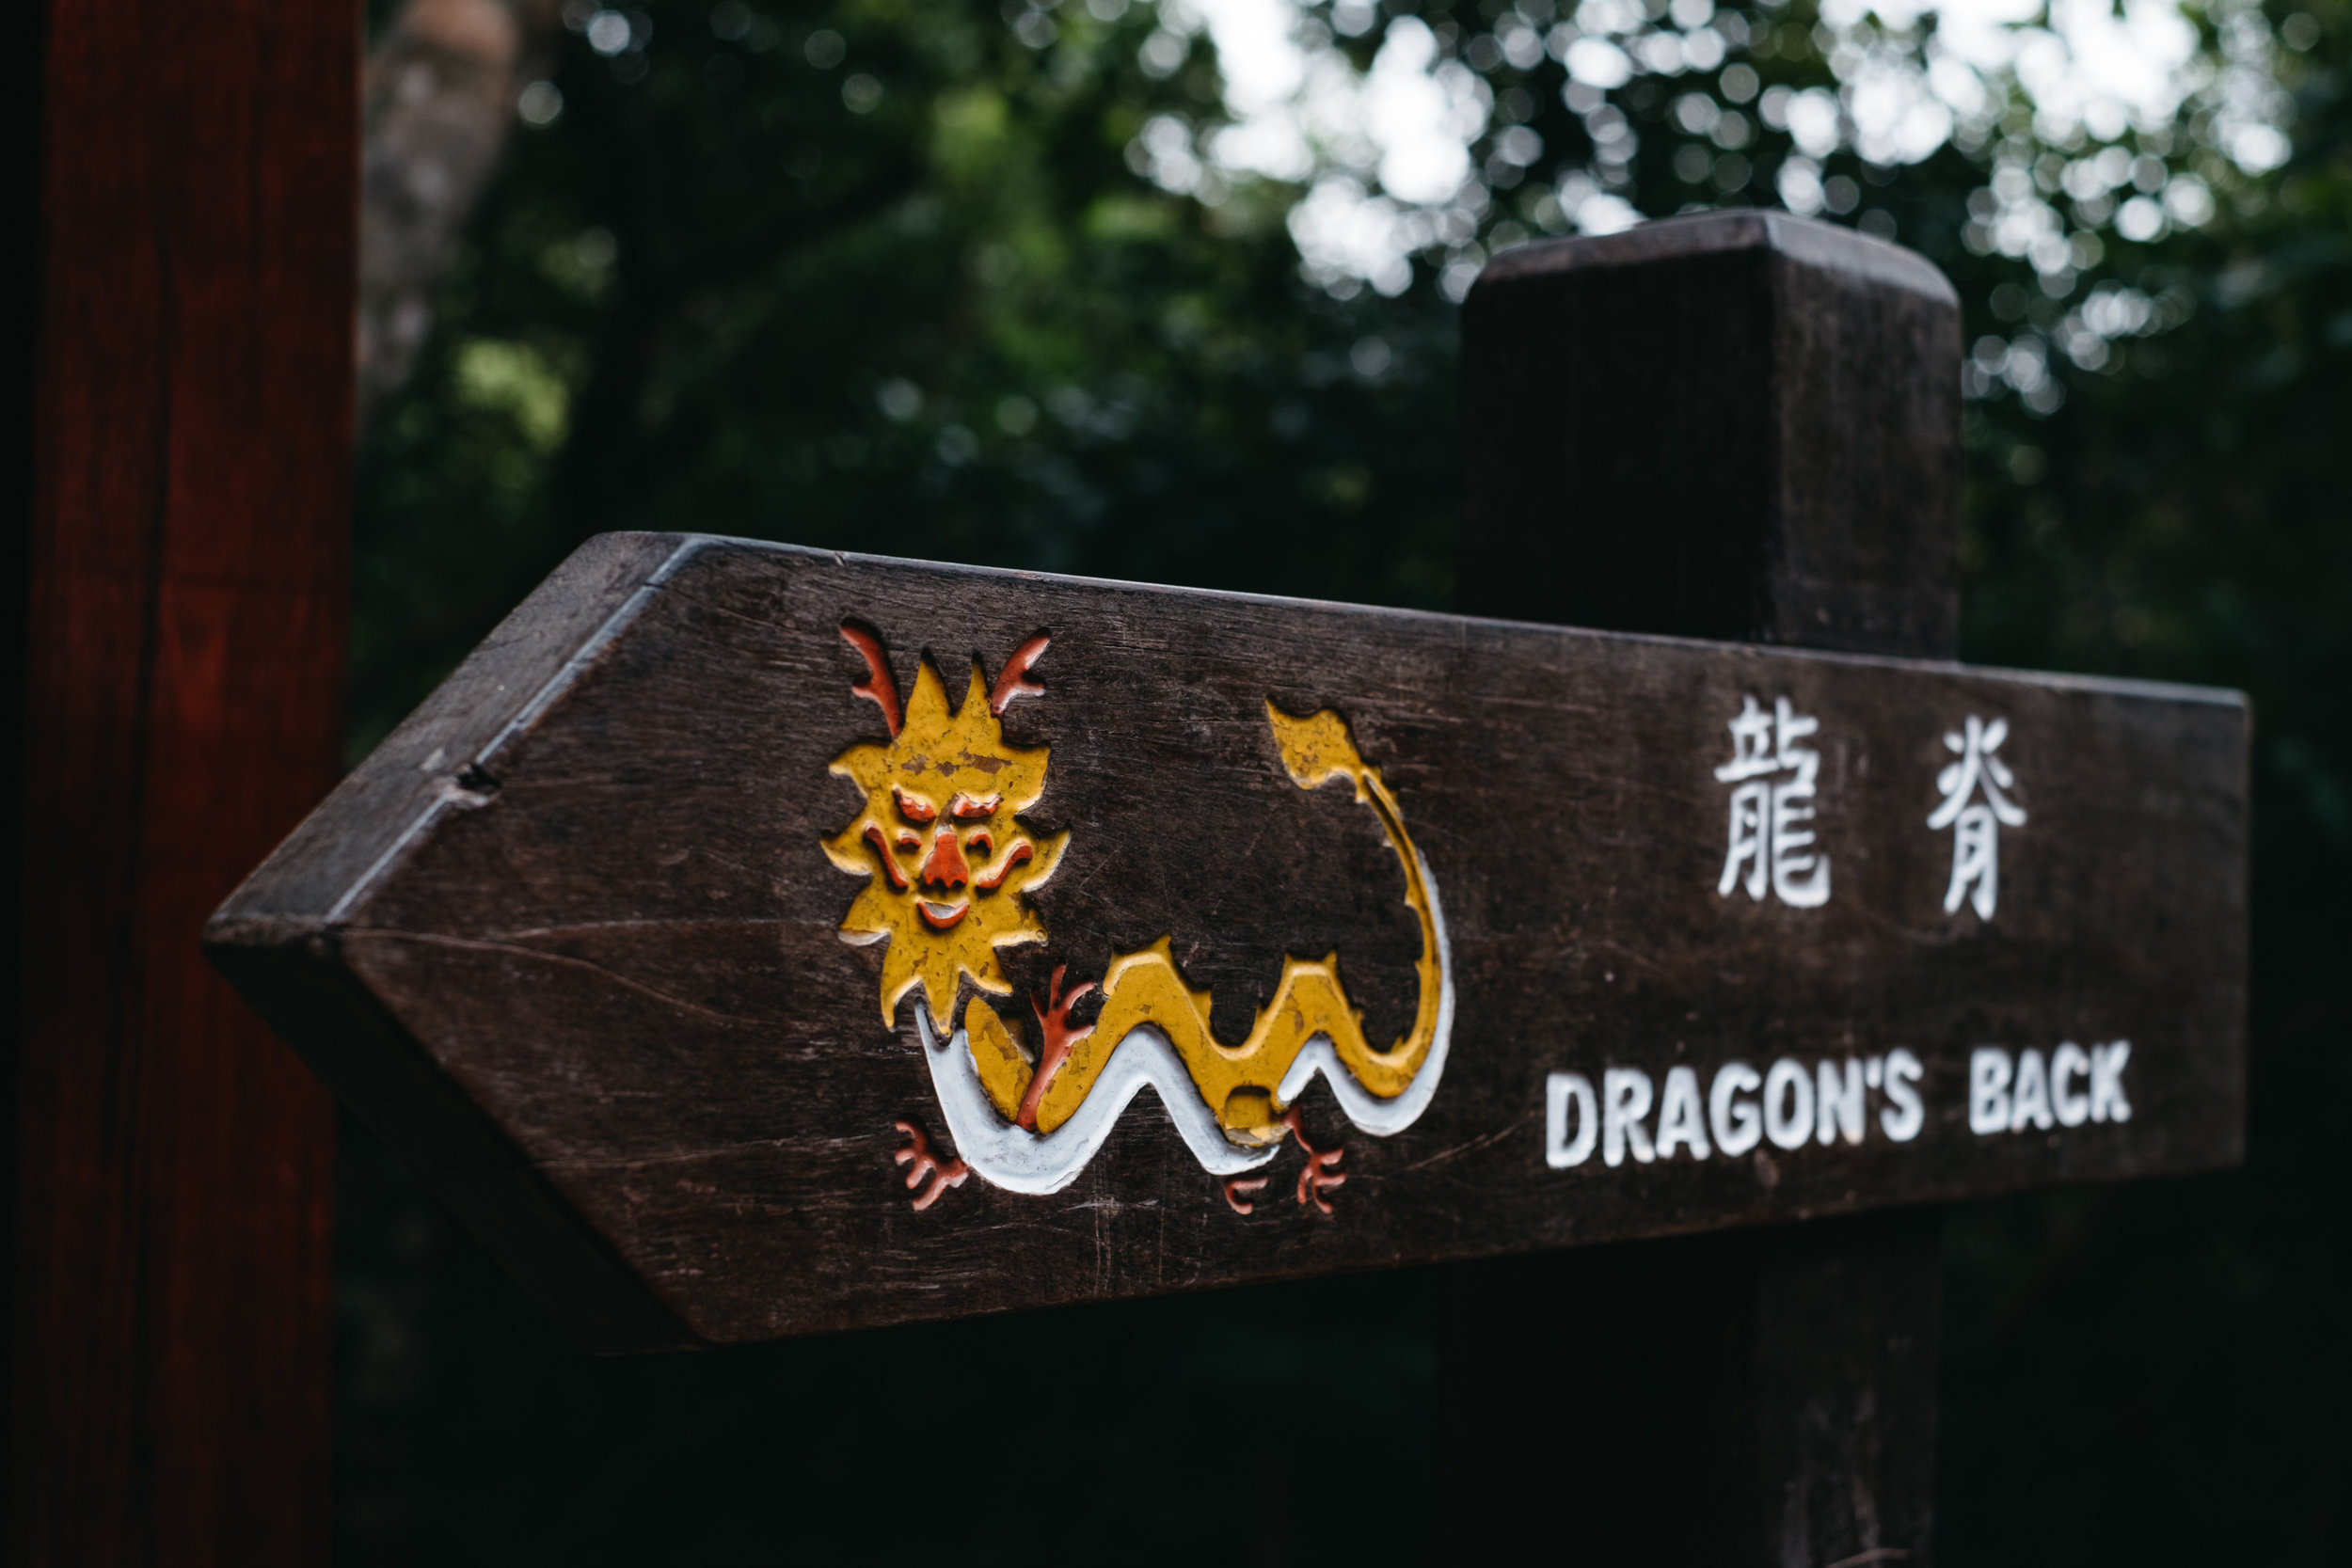 A direction sign for the Dragon's Back Trail in Hong Kong